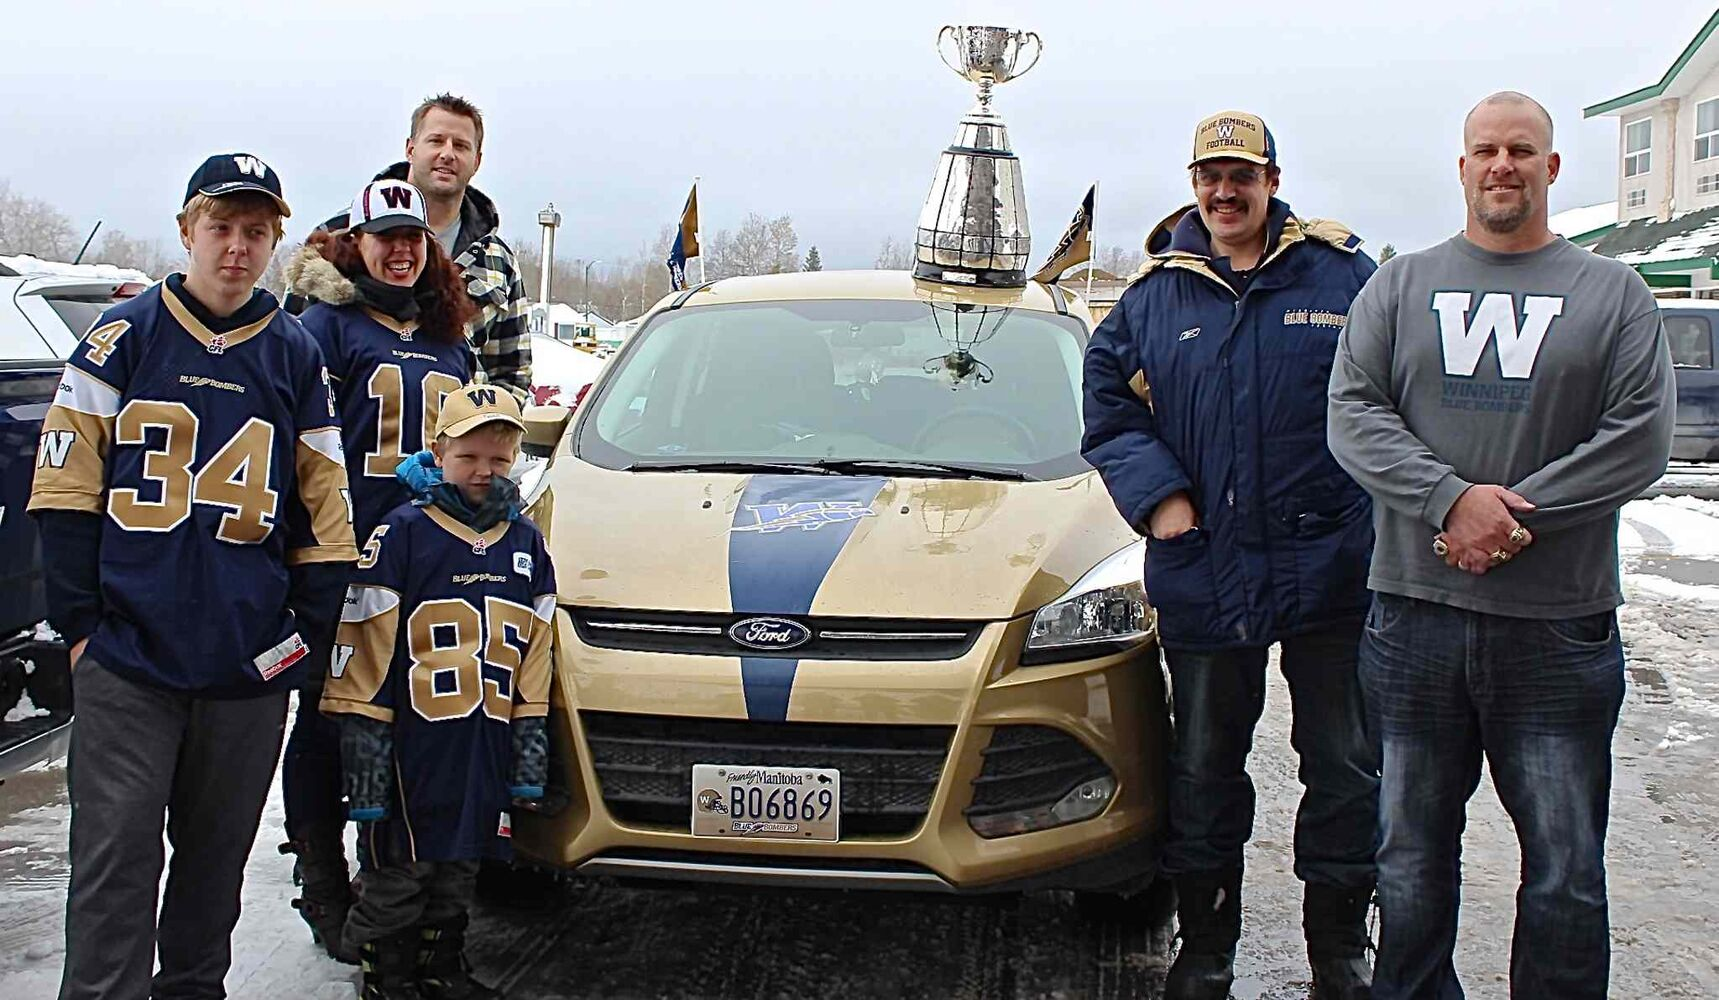 Bombers fans flocked from all over to see the Grey Cup up close. This family from Thompson proved their allegiance to the Blue and Gold, showing up with their truck painted in team colours.